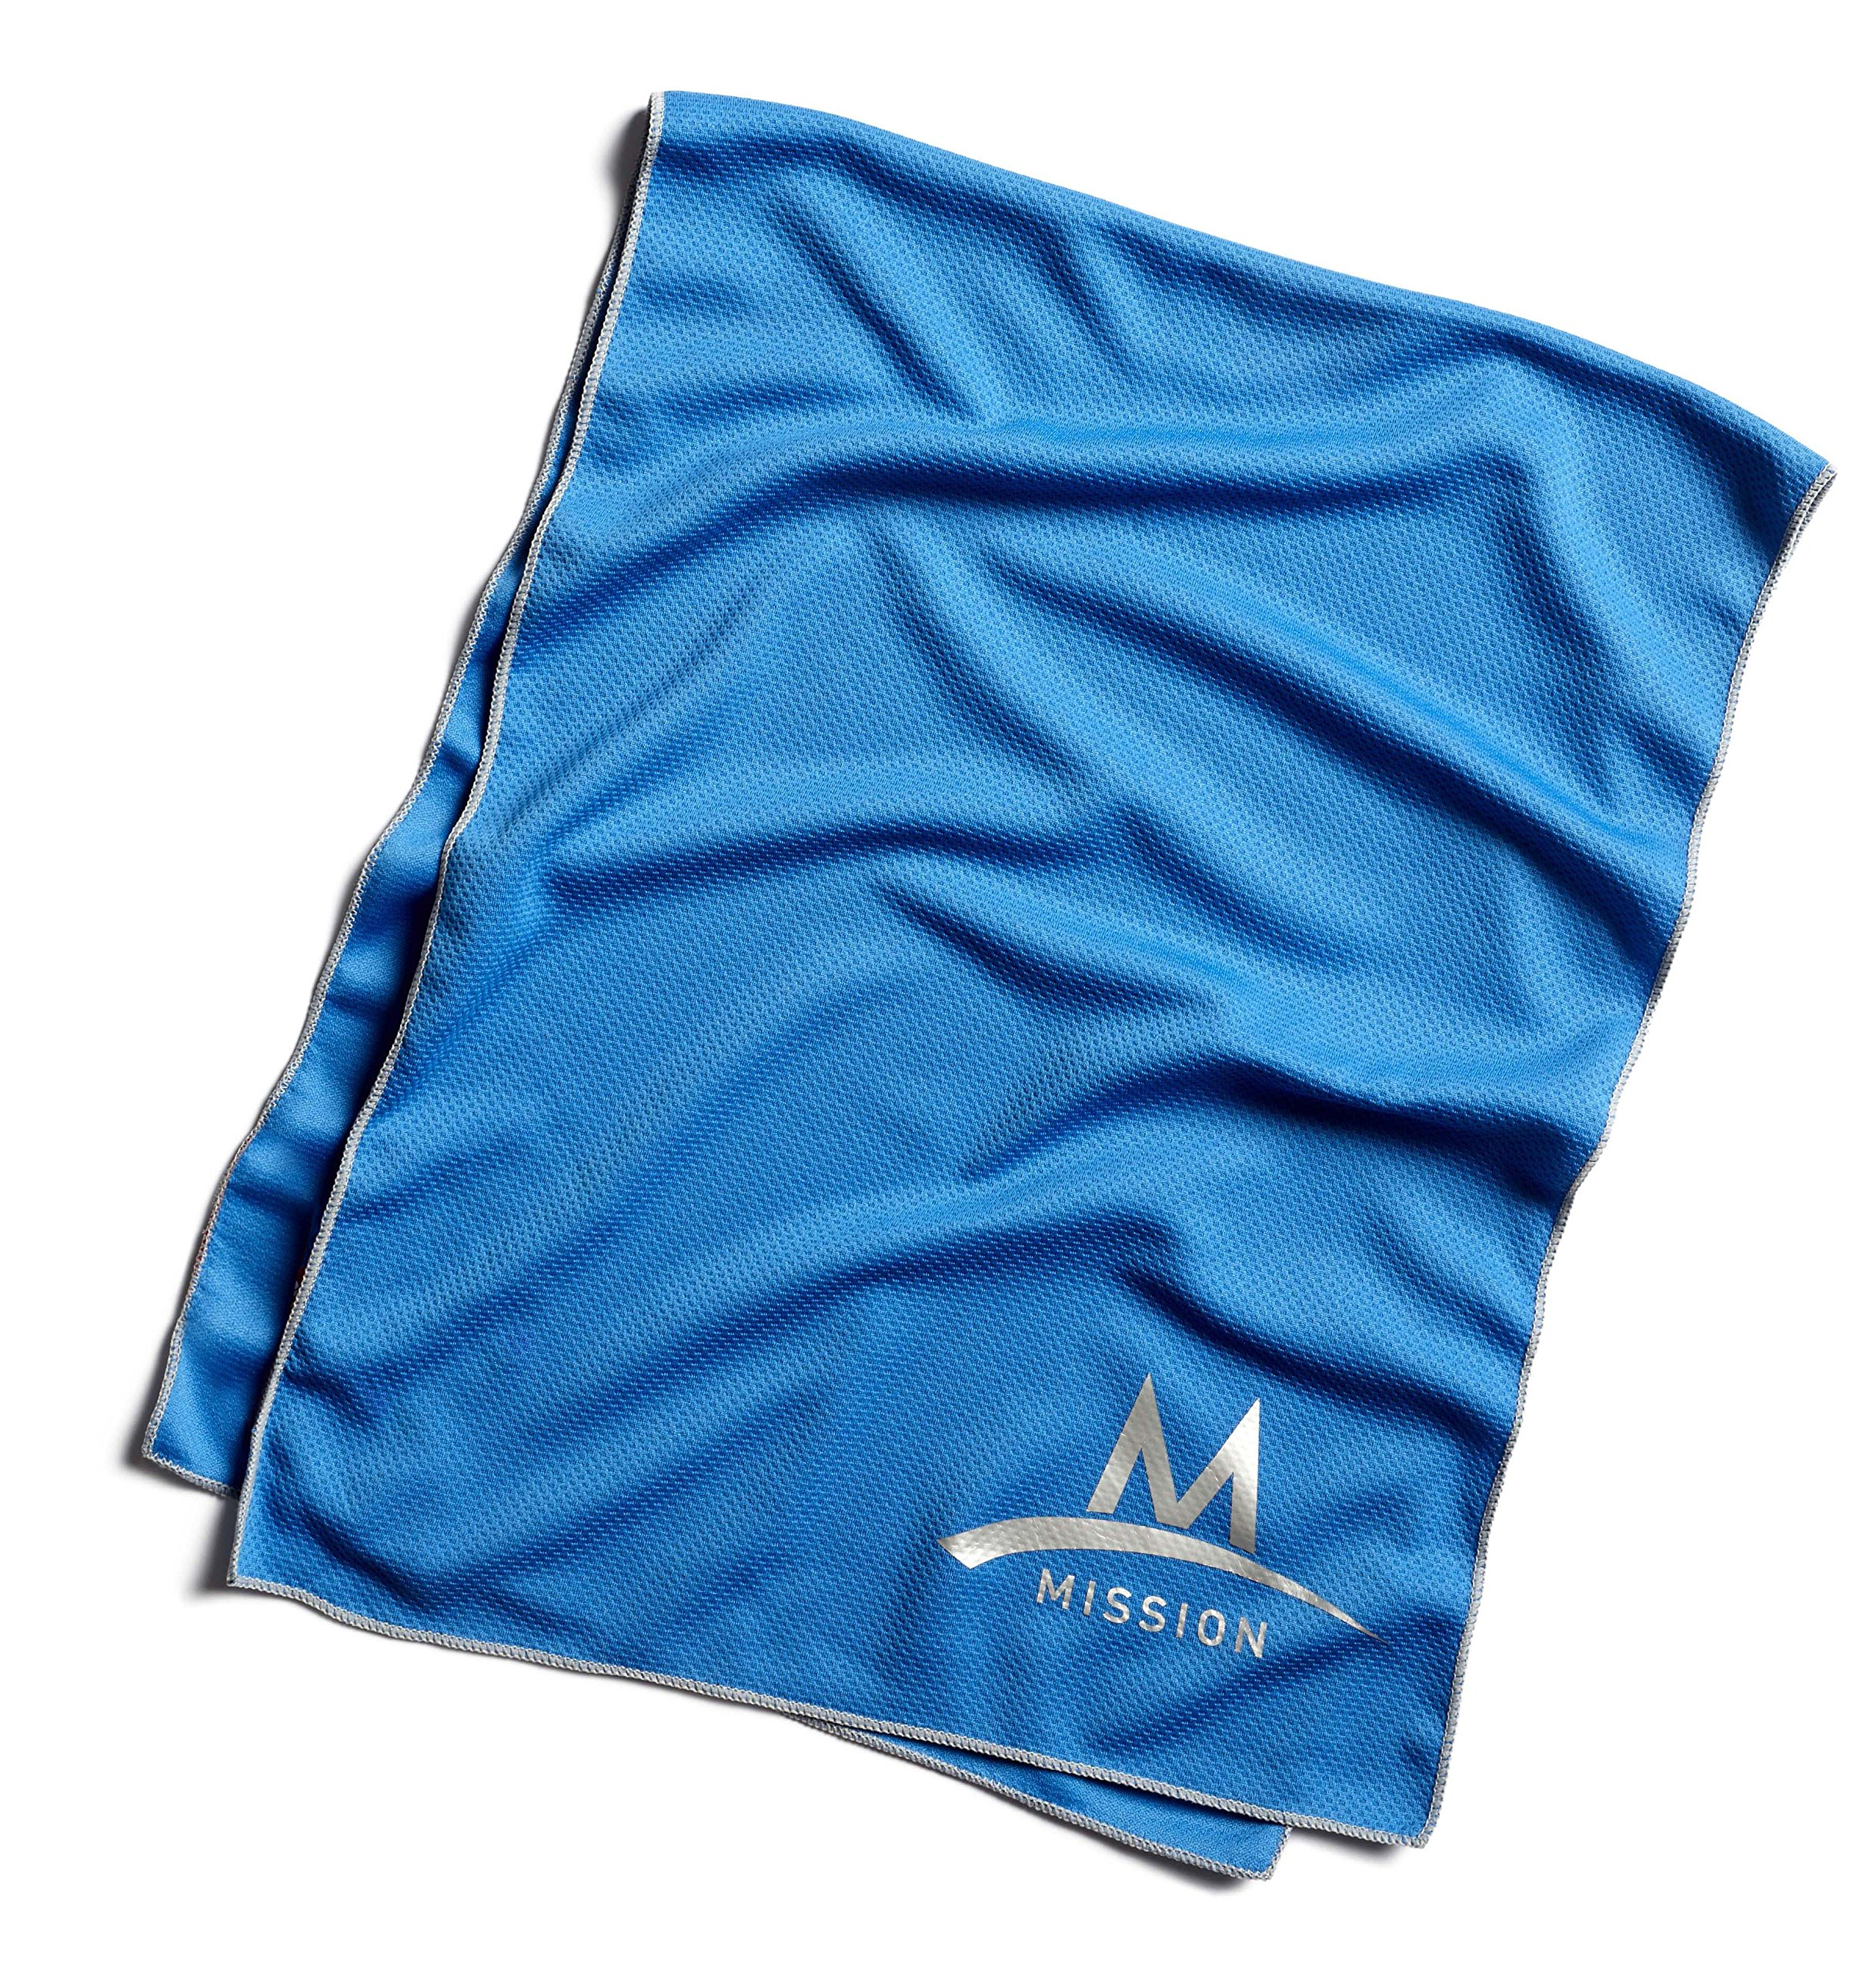 MISSION Premium Cooling Towel by MISSION (Image #1)